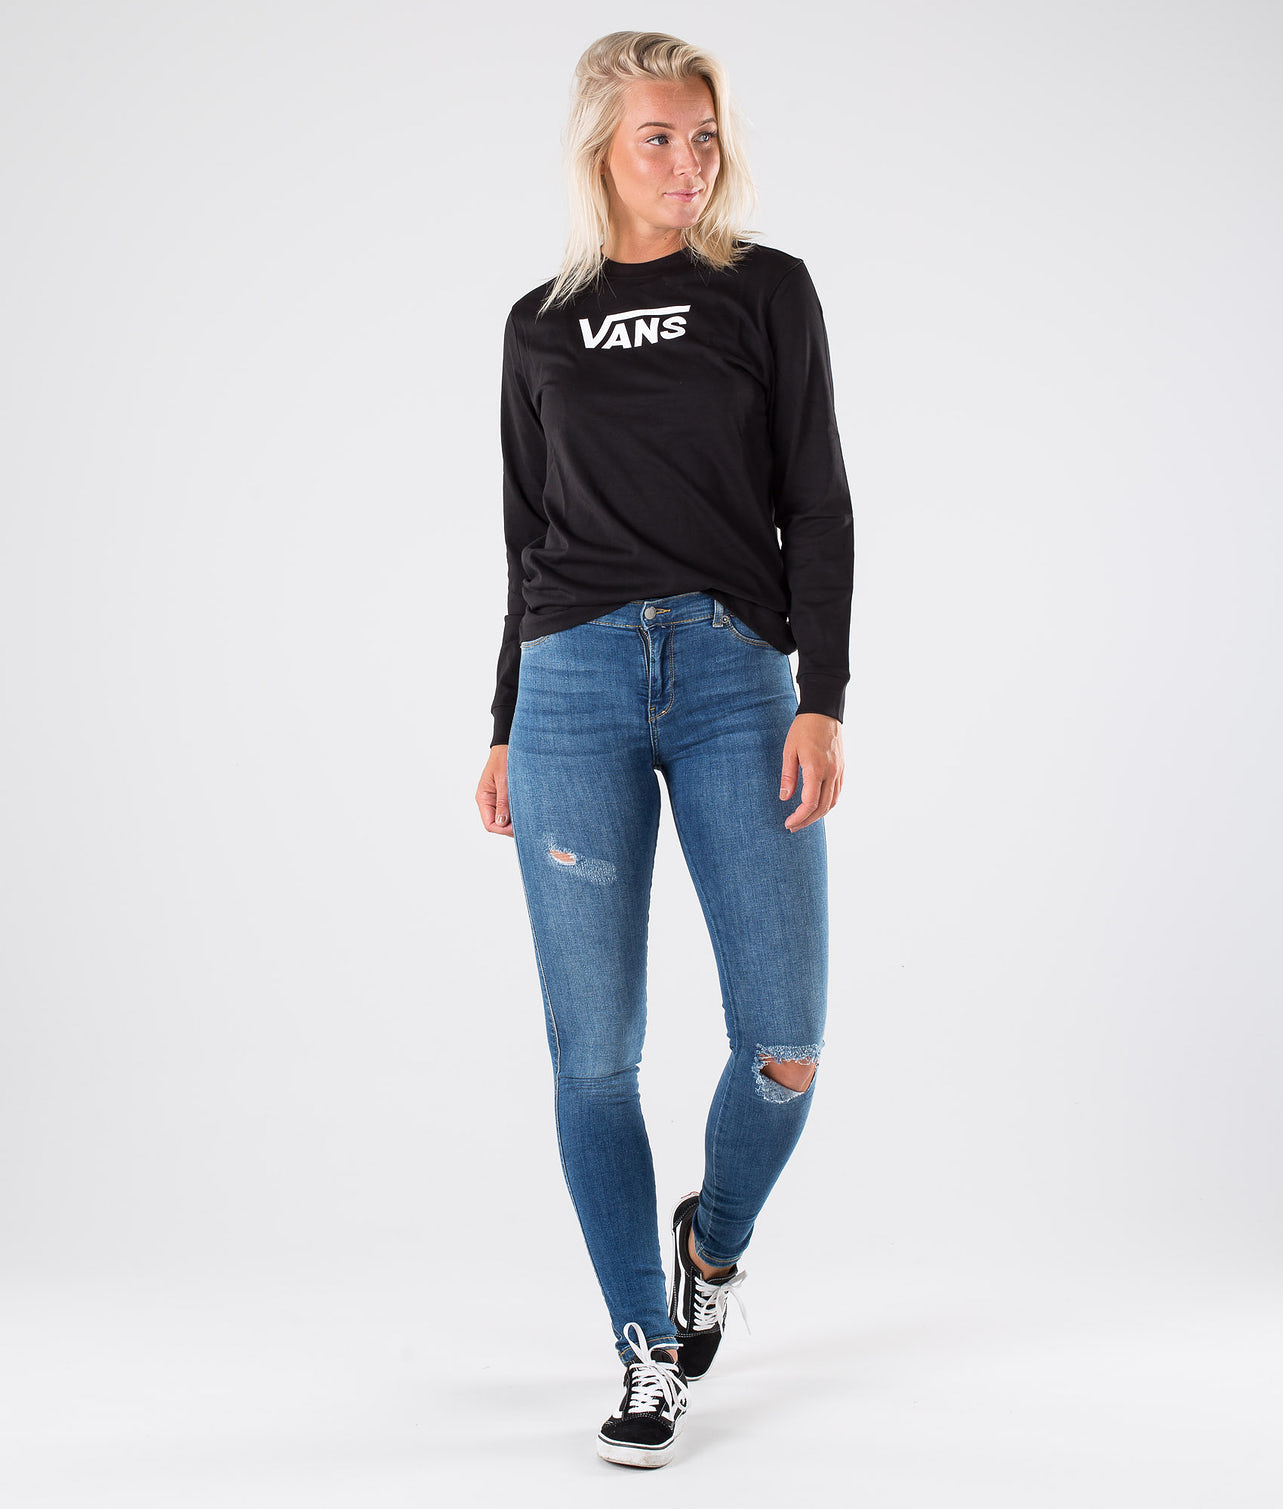 Vans Flying V Clasic BF Longsleeve Black